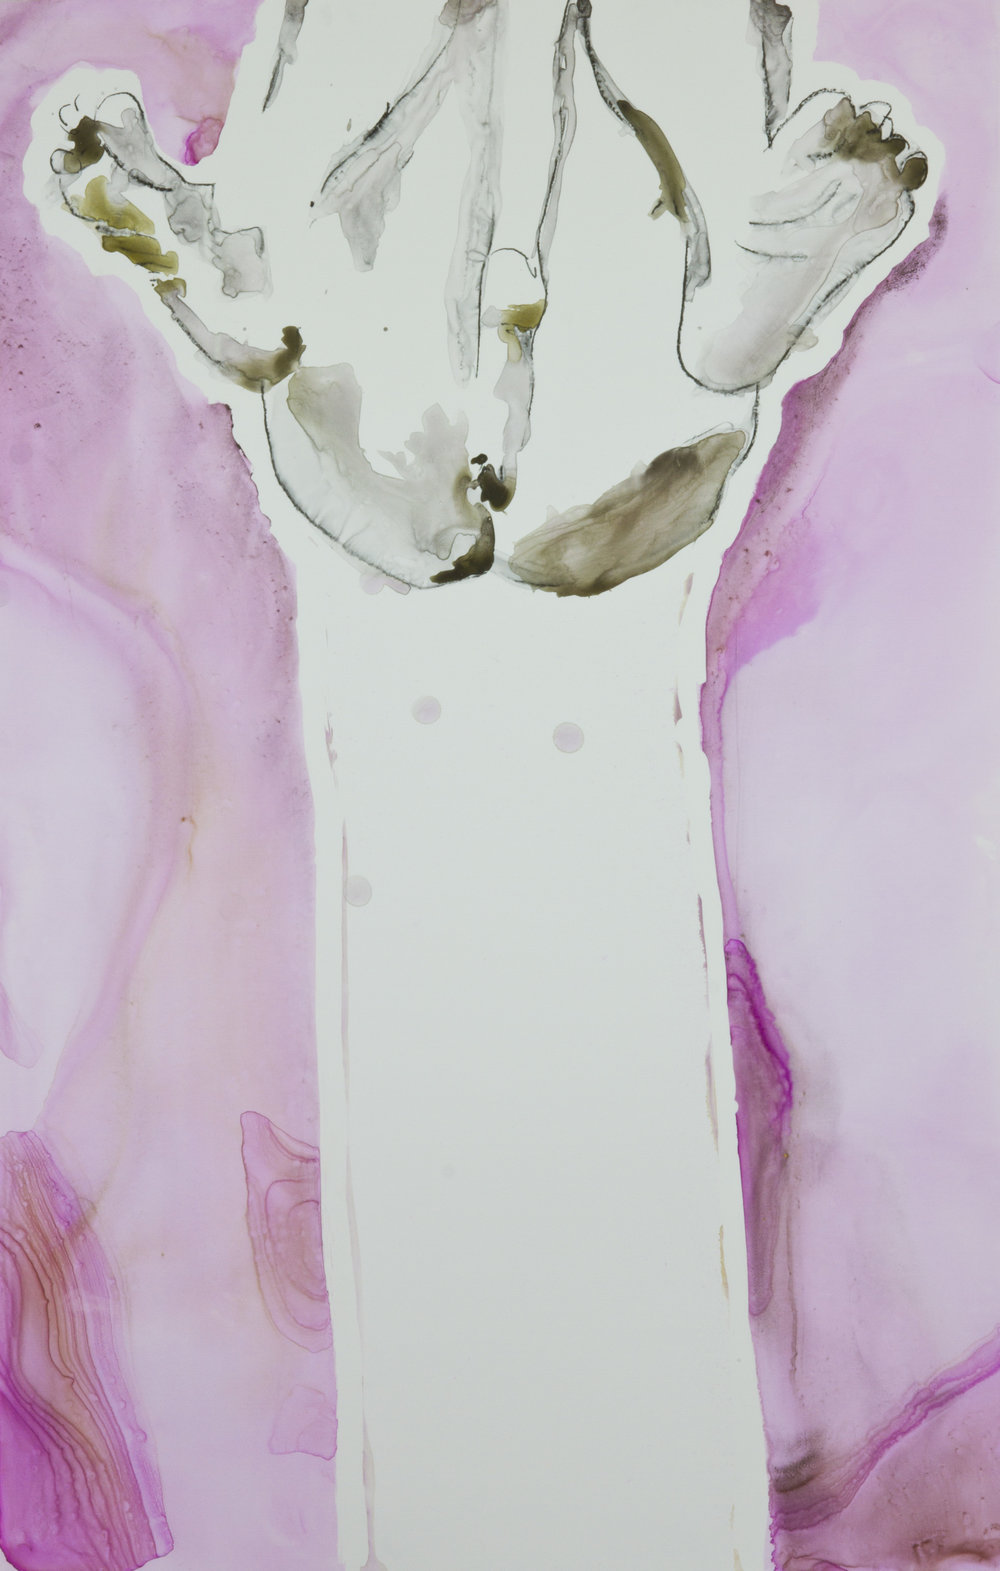 Pink Passage, 2012, watercolor and acrylic on polypropylene, 26x40 inches